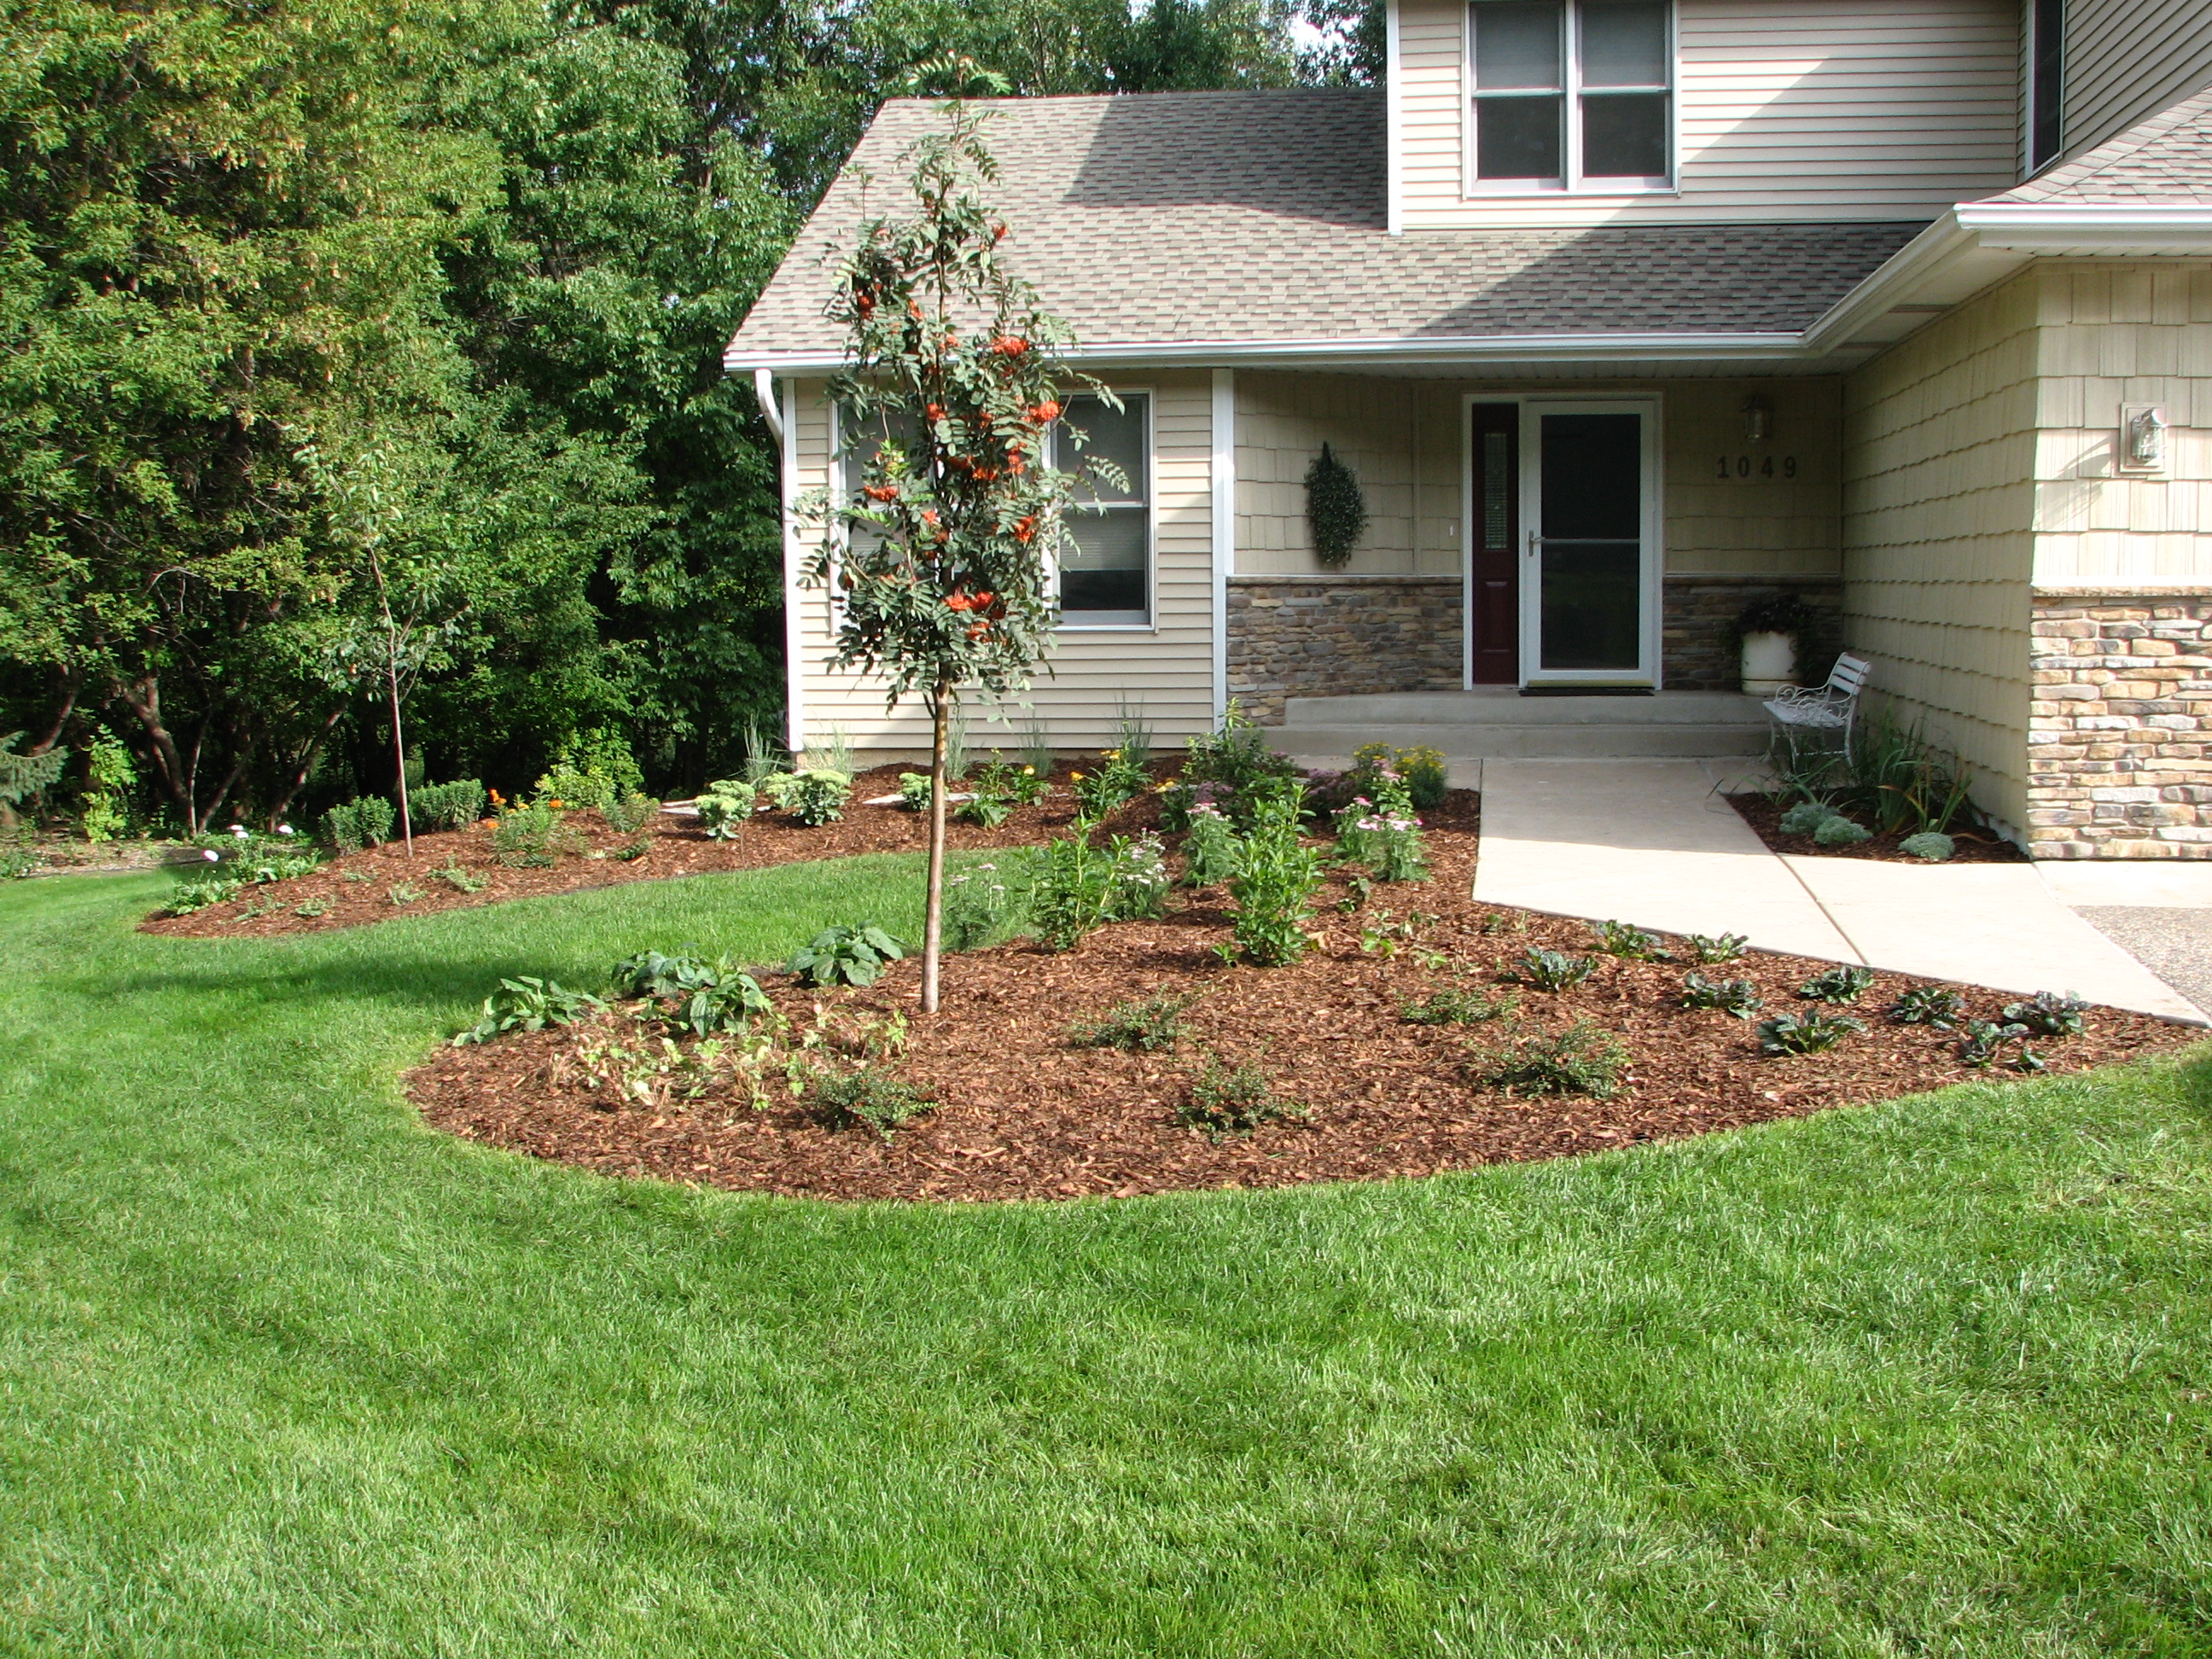 vince landscaping n3801 will rd jefferson wi 53549 ypcom - Landscaping Pictures